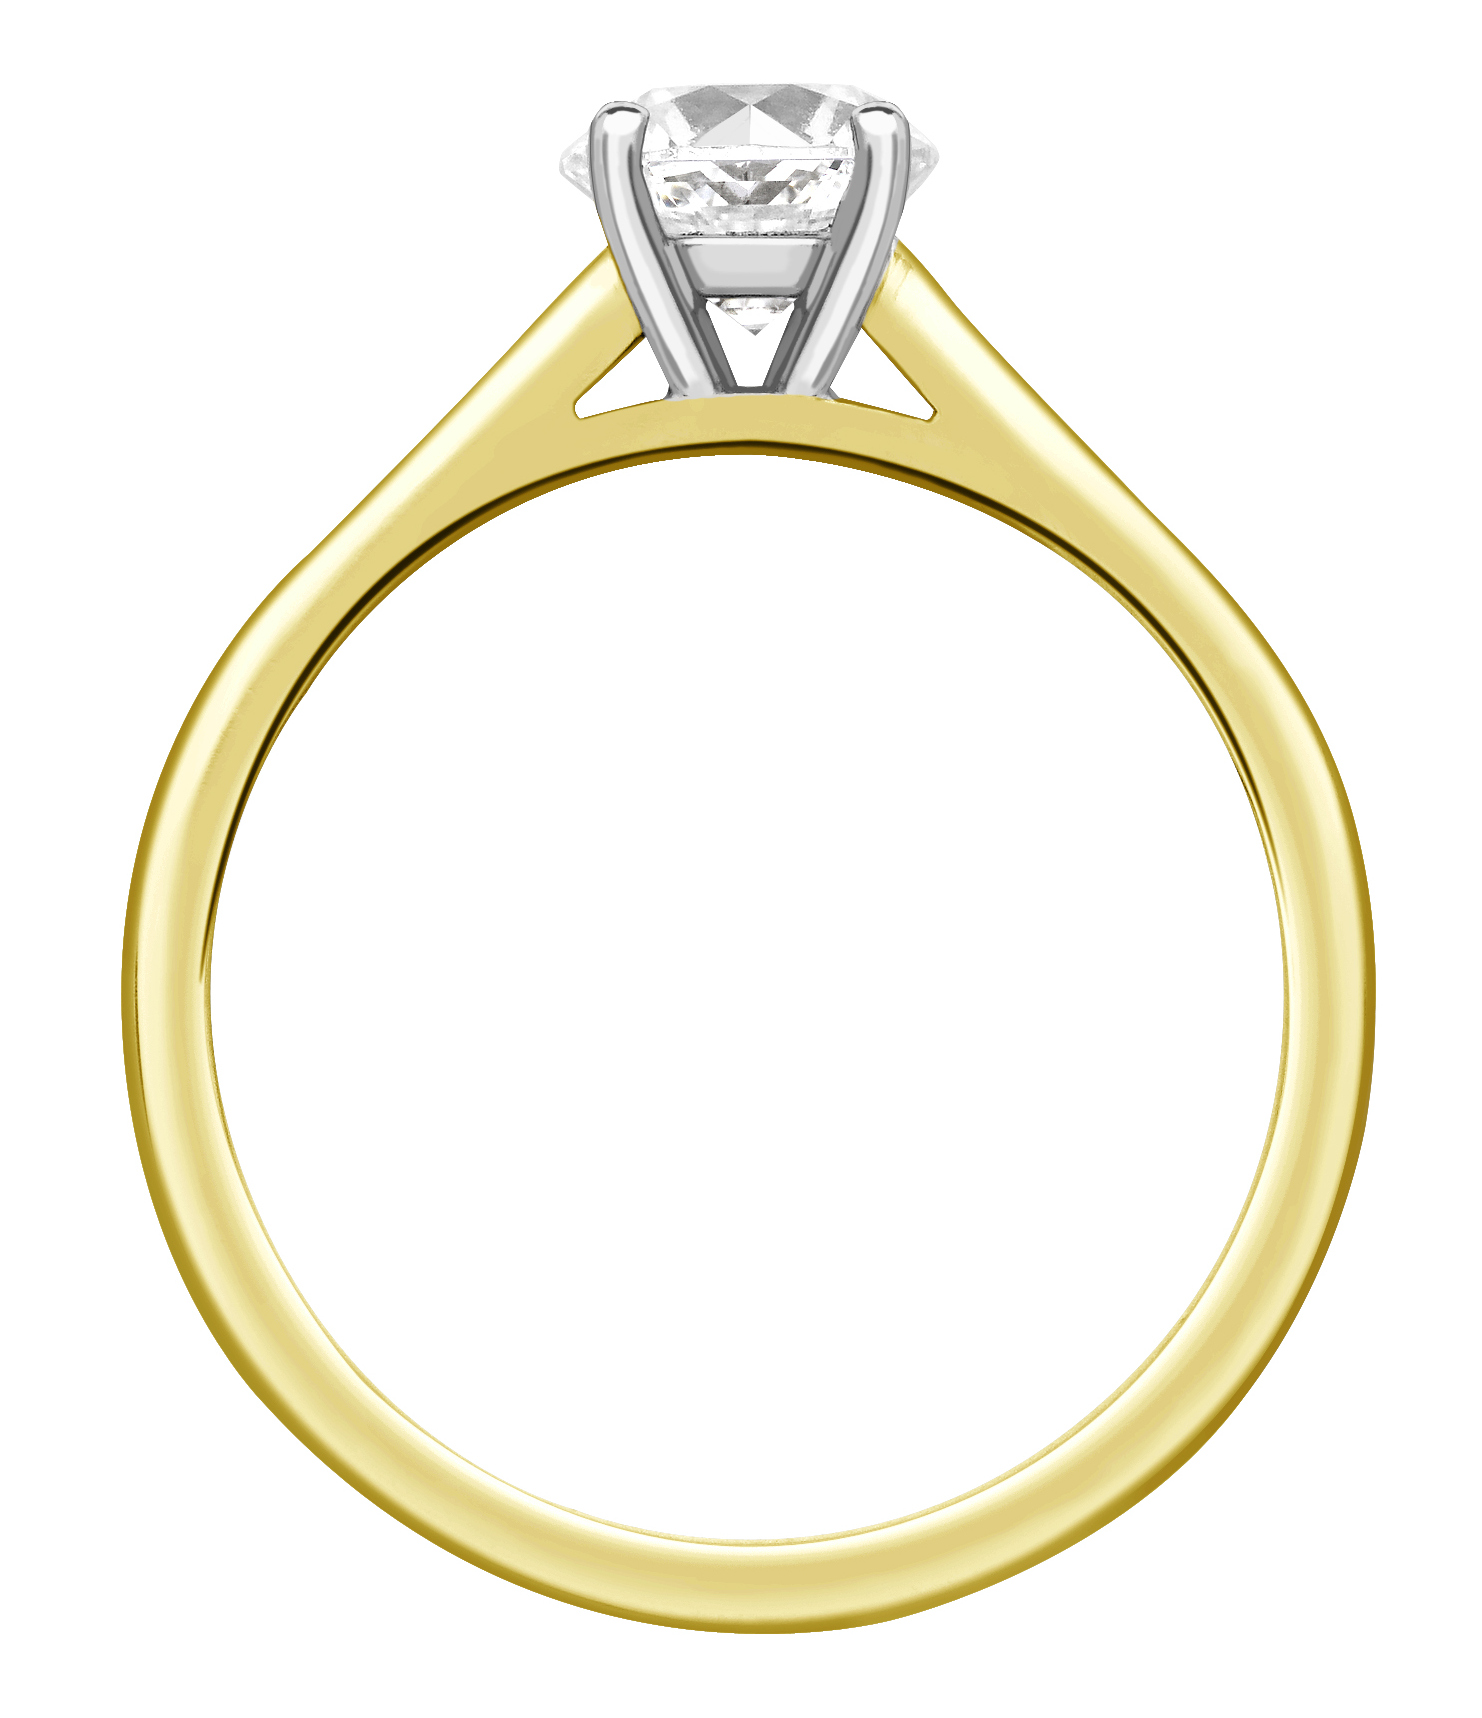 Round Four Claw Yellow Gold Channel Set Engagement Ring CRC761YG  Image 2